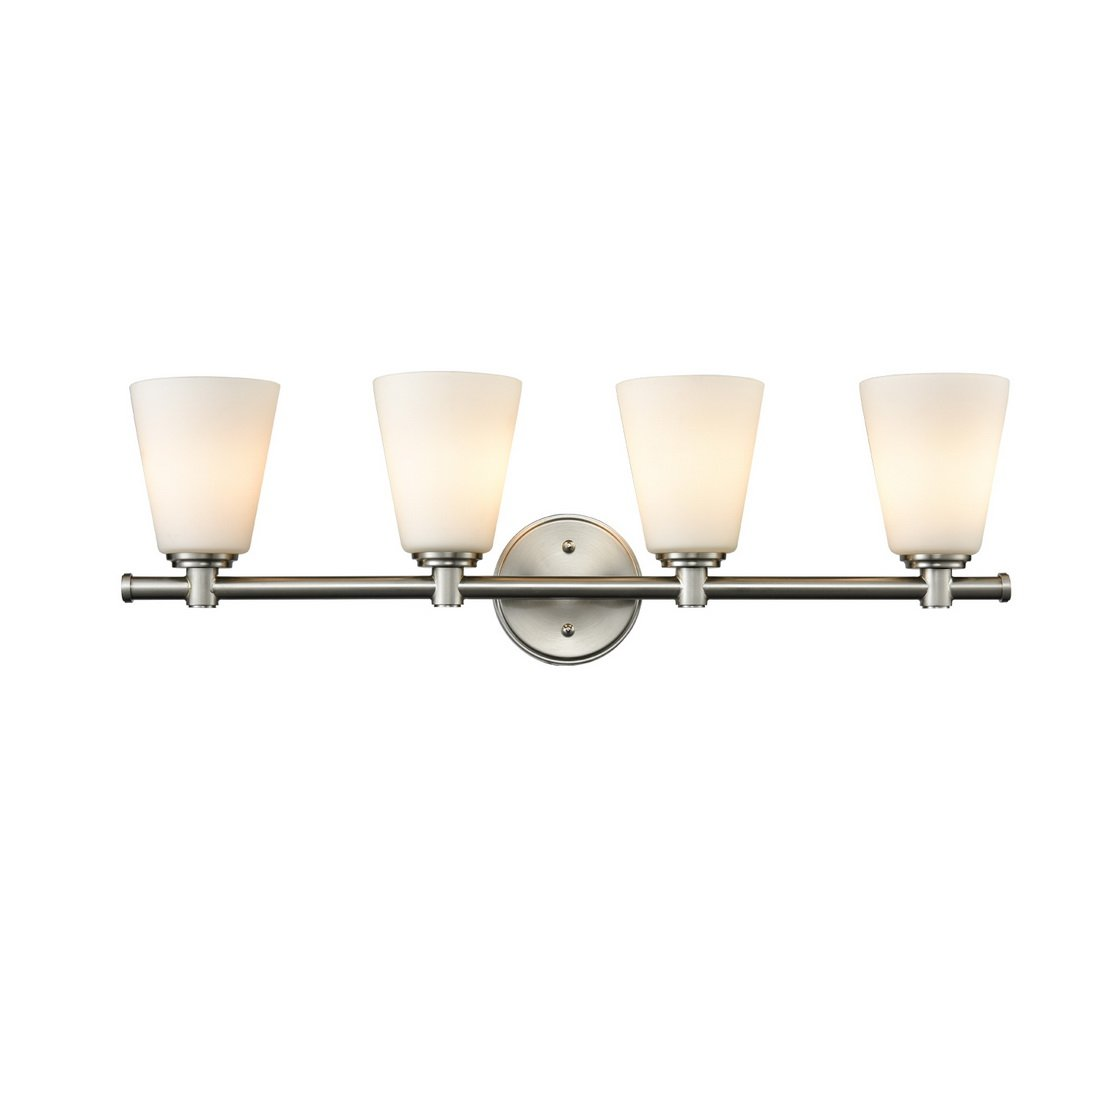 AXILAND 4 Light Vanity Lights Wall Sconce Brushed Nickel with Opal Glass Shade